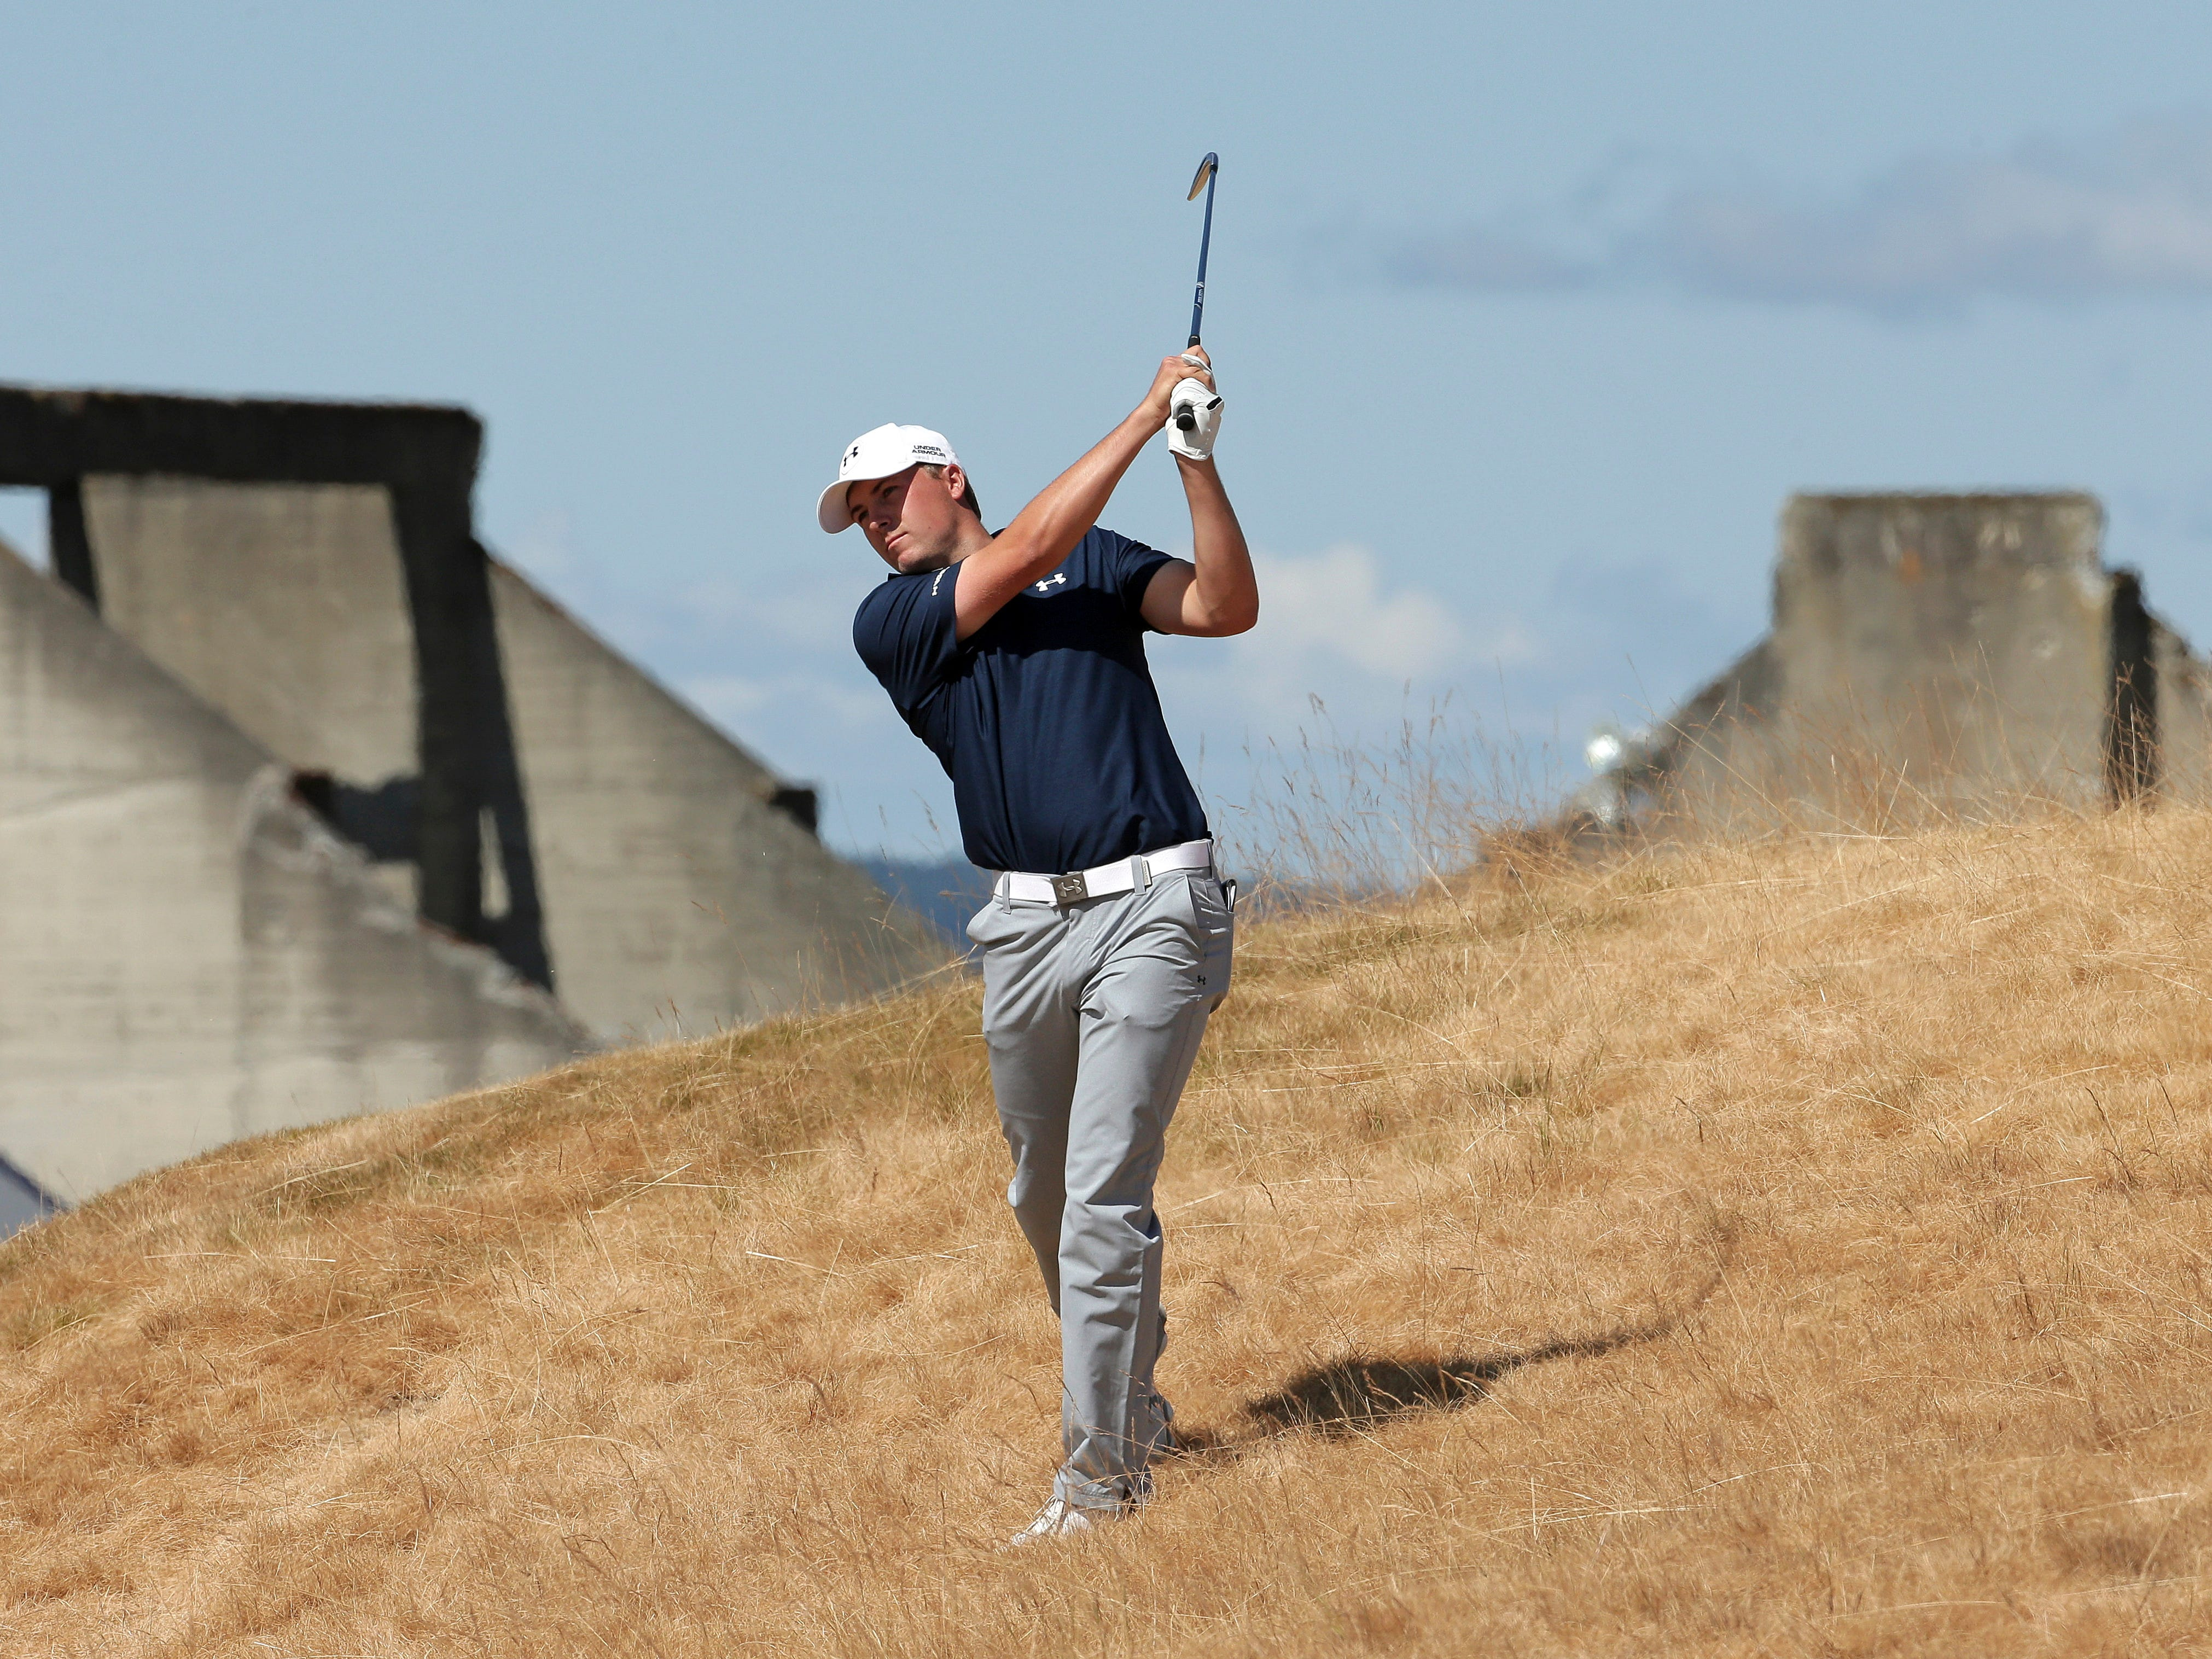 Jordan Spieth hits out of the tall fescue grass on the 18th hole during the second round of the U.S. Open golf tournament at Chambers Bay on Friday, June 19, 2015 in University Place, Wash. (AP Photo/Charlie Riedel)